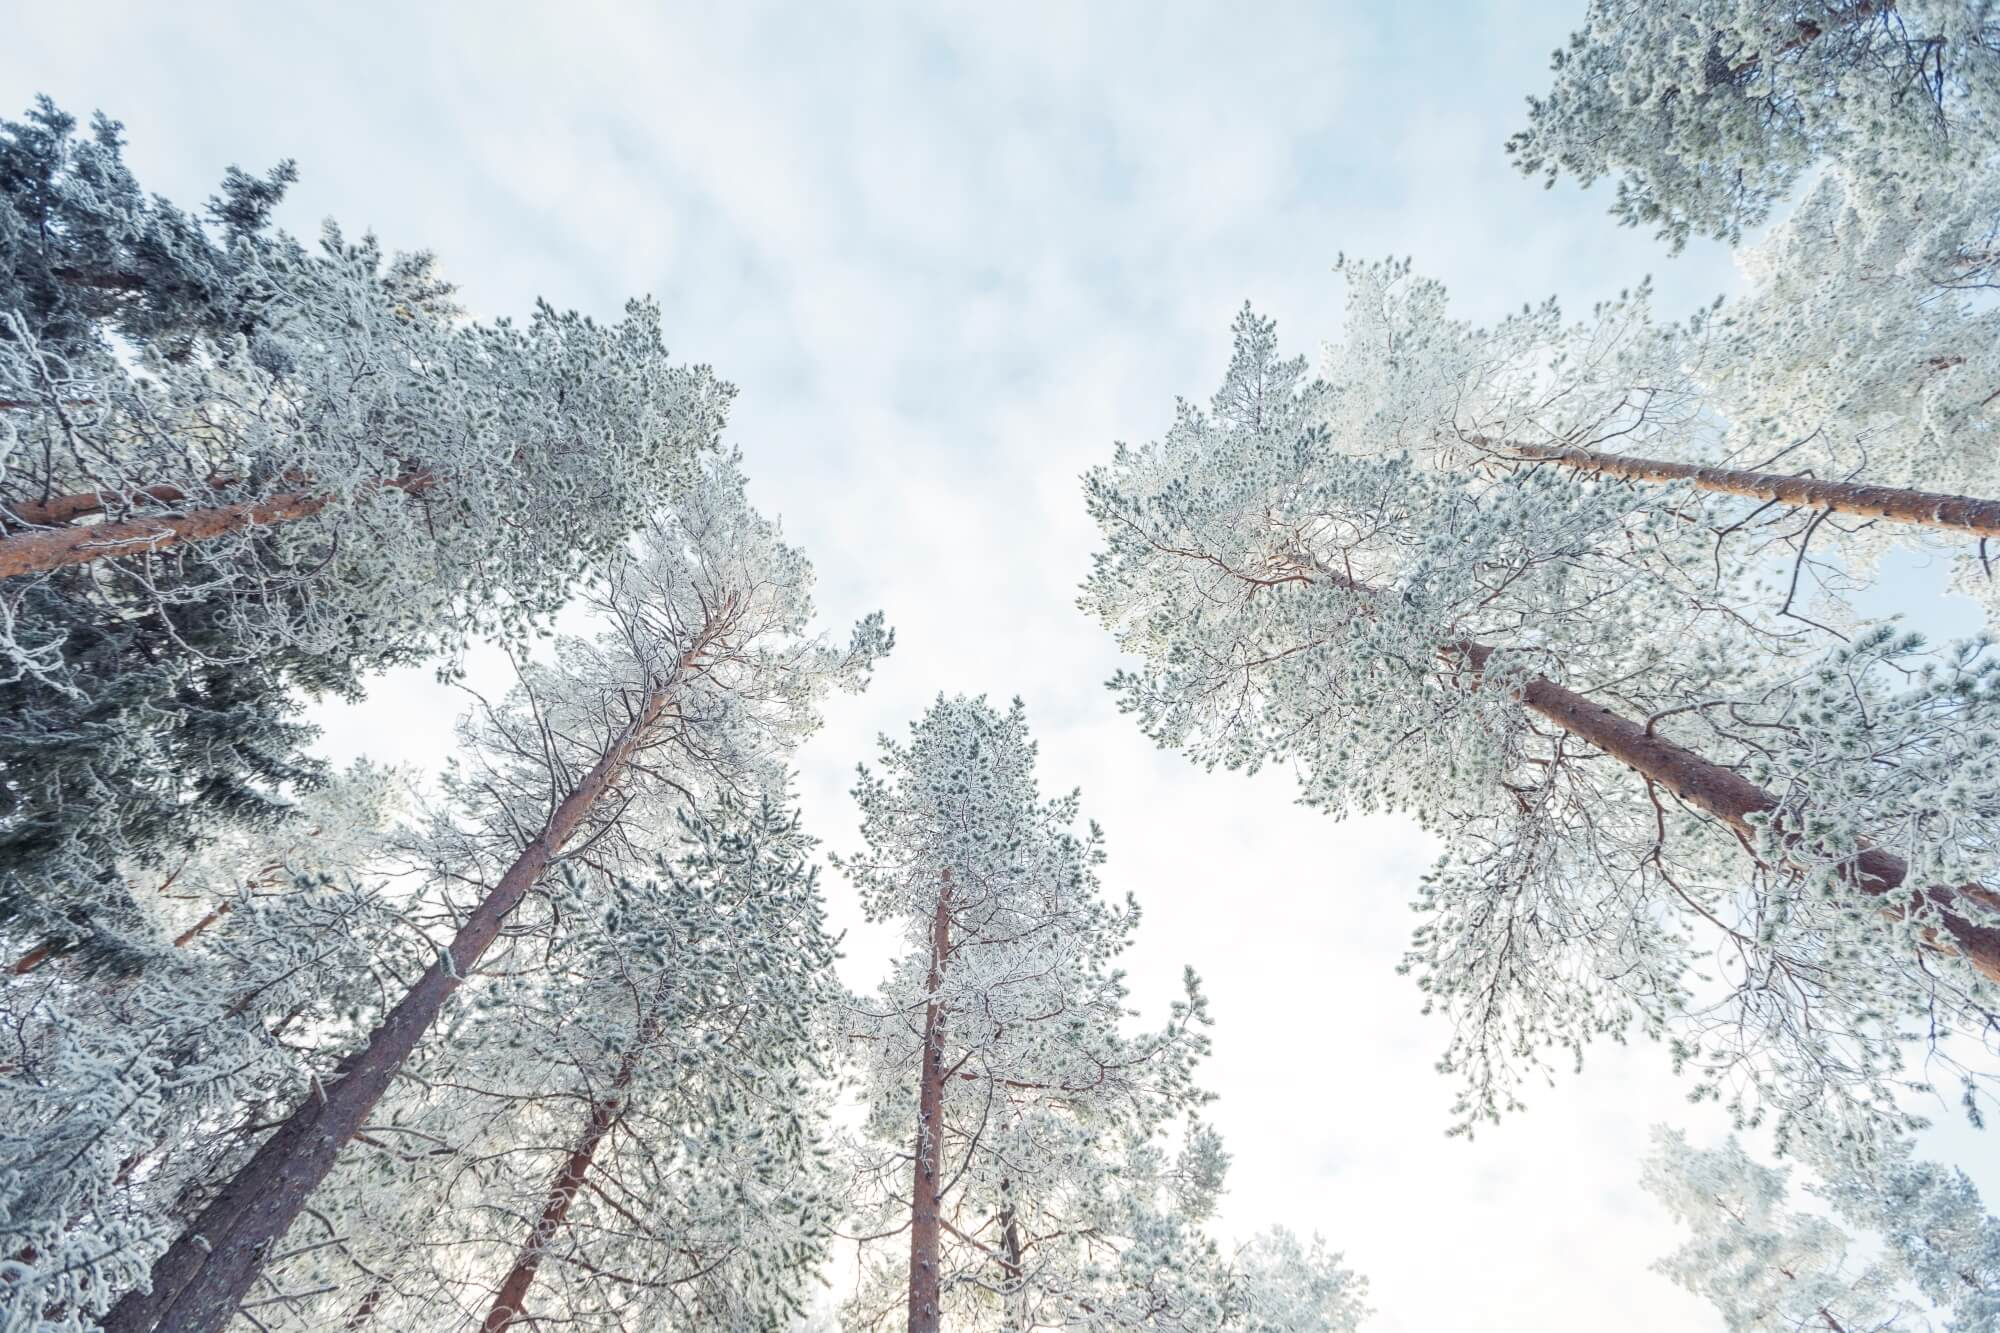 MissionVision_WinterForest_01.jpg